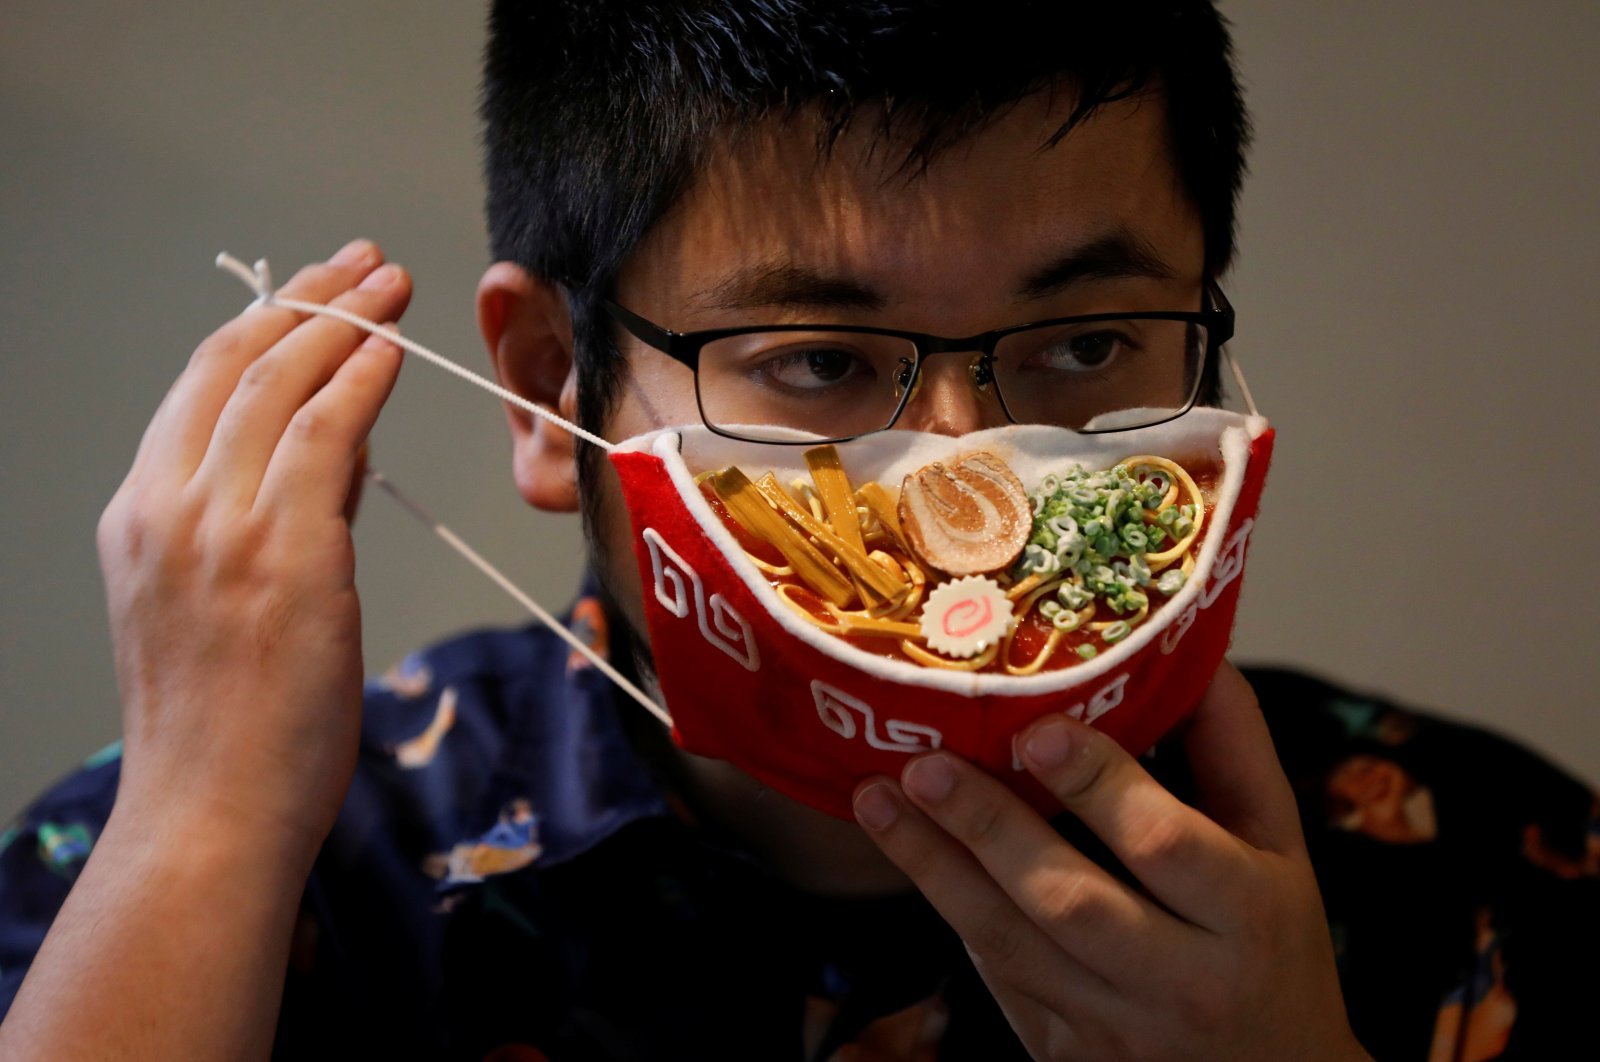 Japanese designer Takahiro Shibata's puts on his protective mask that looks like a steaming bowl of ramen noodle soup at his house, following the coronavirus disease (COVID-19) outbreak in Yokohama, Japan on Sept. 23, 2020. (Reuters Photo)